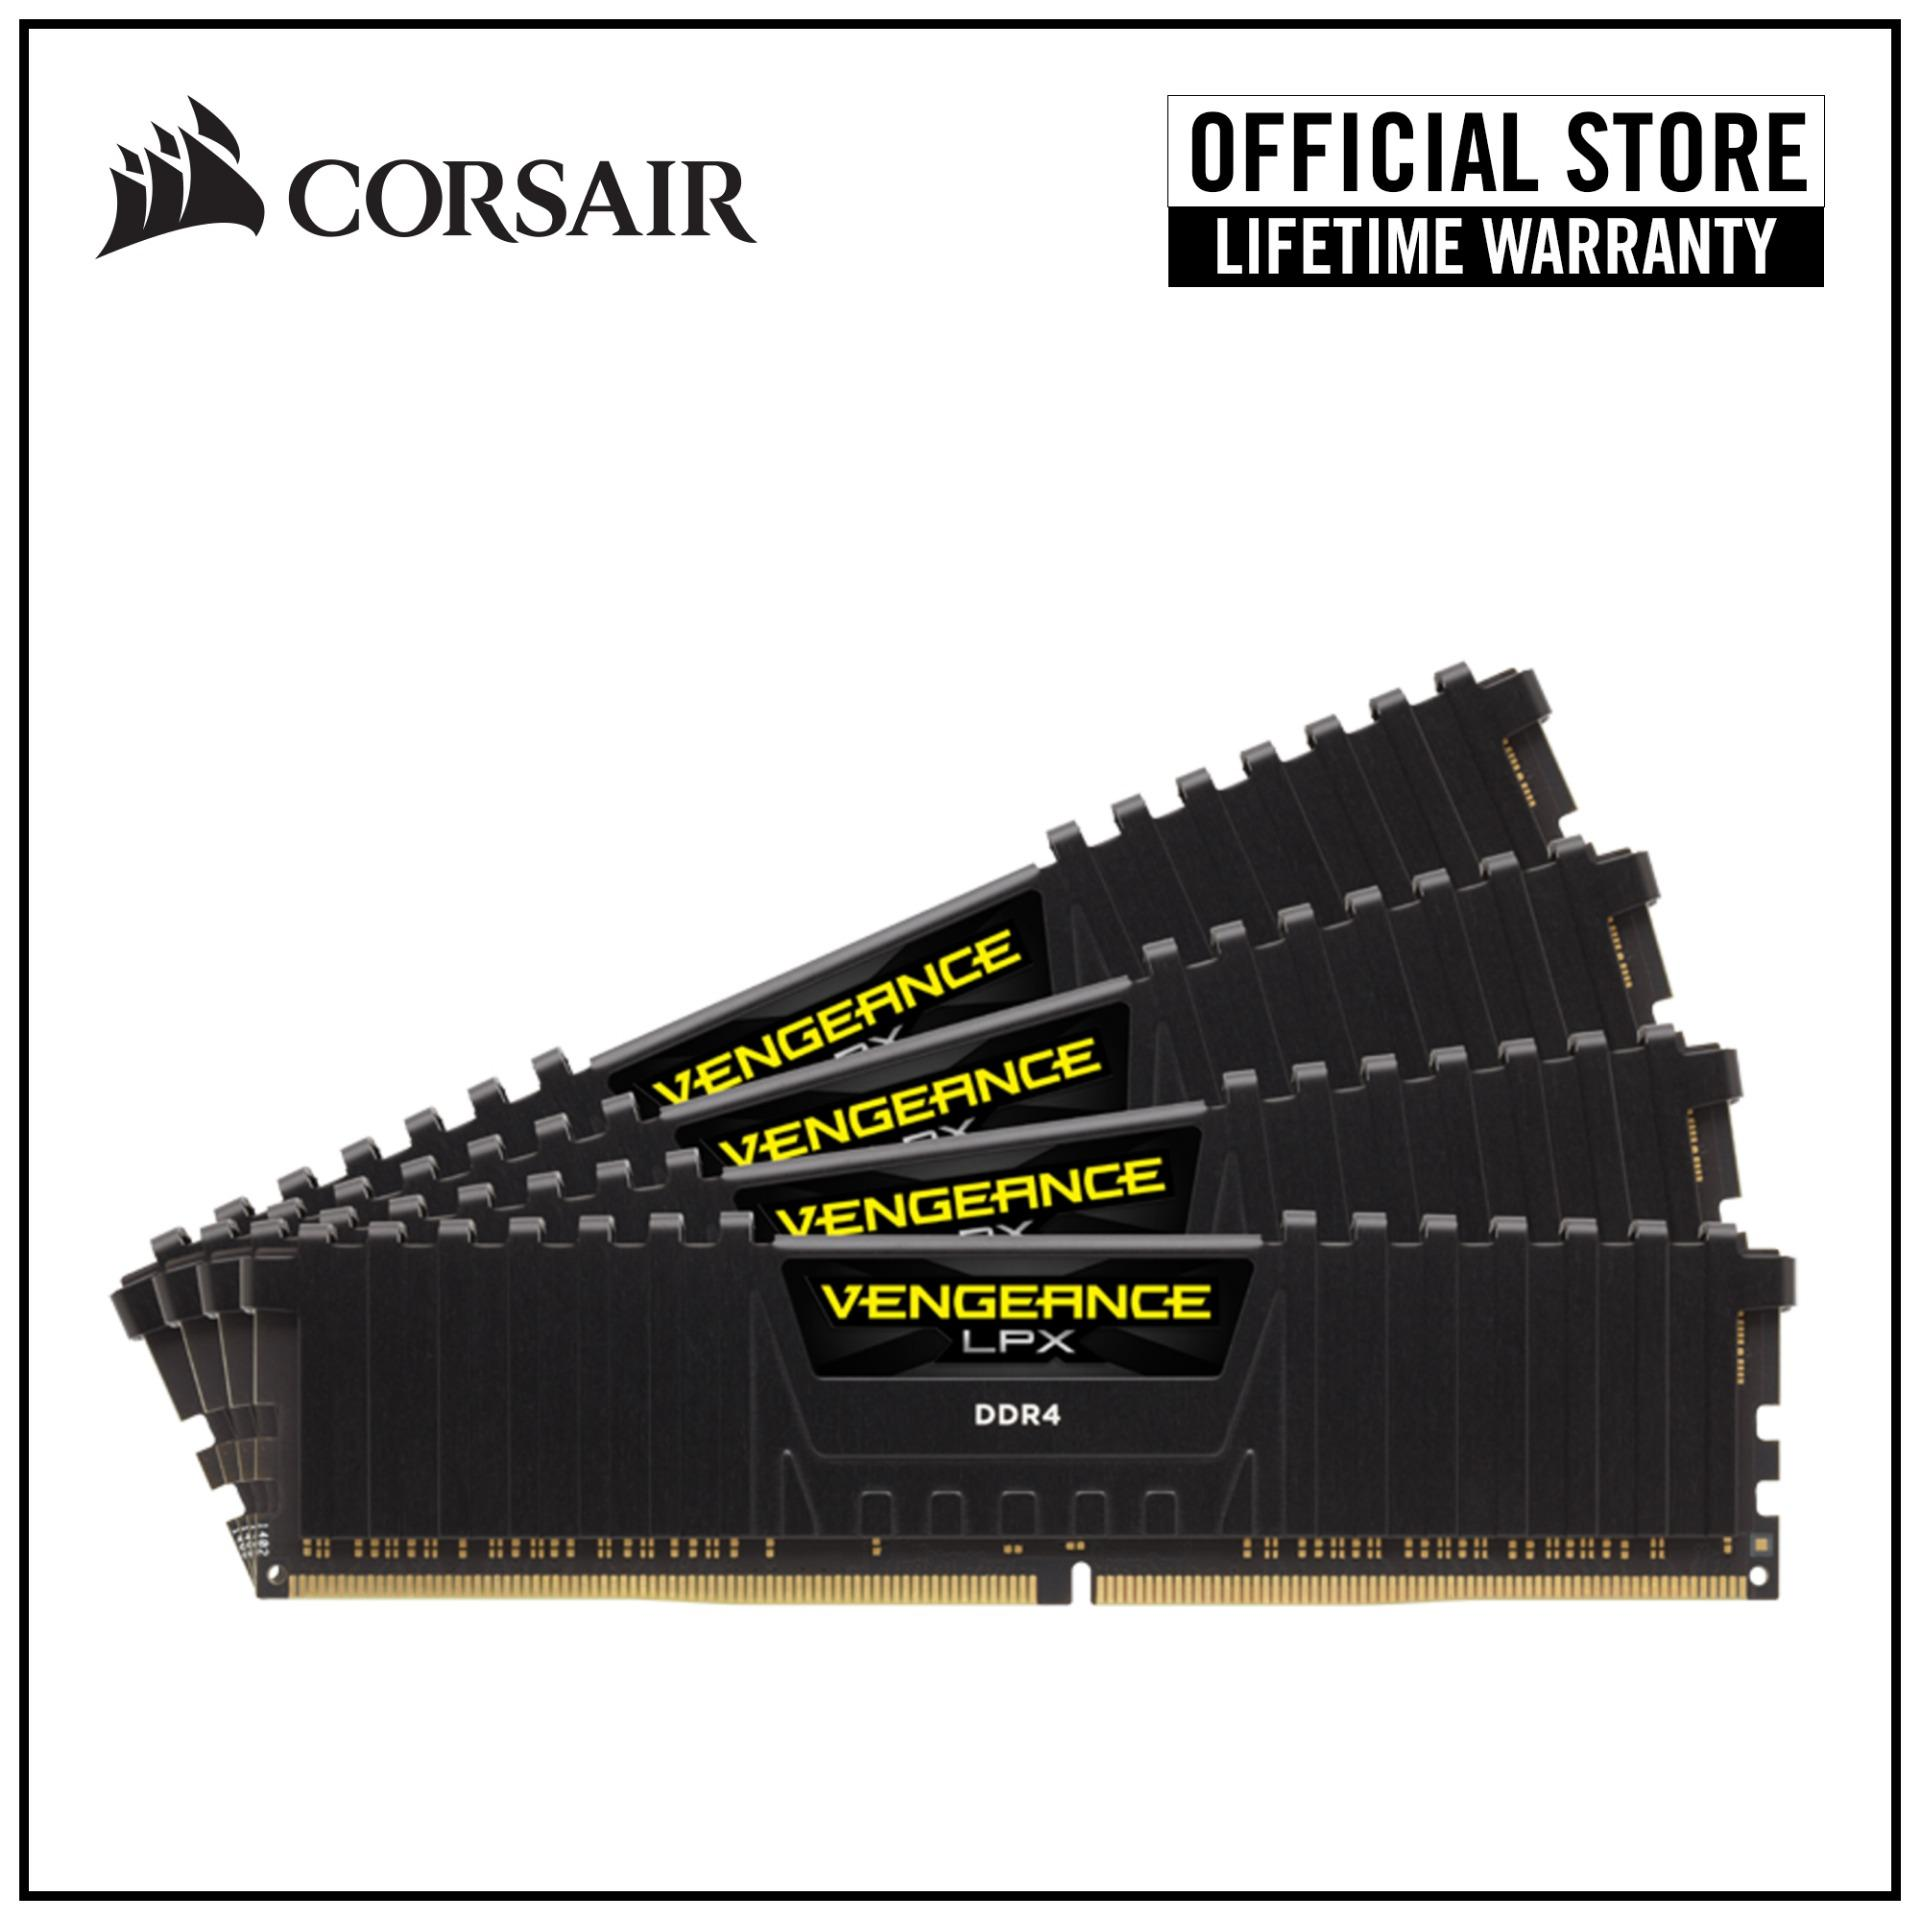 CORSAIR Vengeance LPX Ryzen Certified 32GB (4x8GB) DDR4 2933MHz C16 DIMM  Desktop Memory Kit - Black